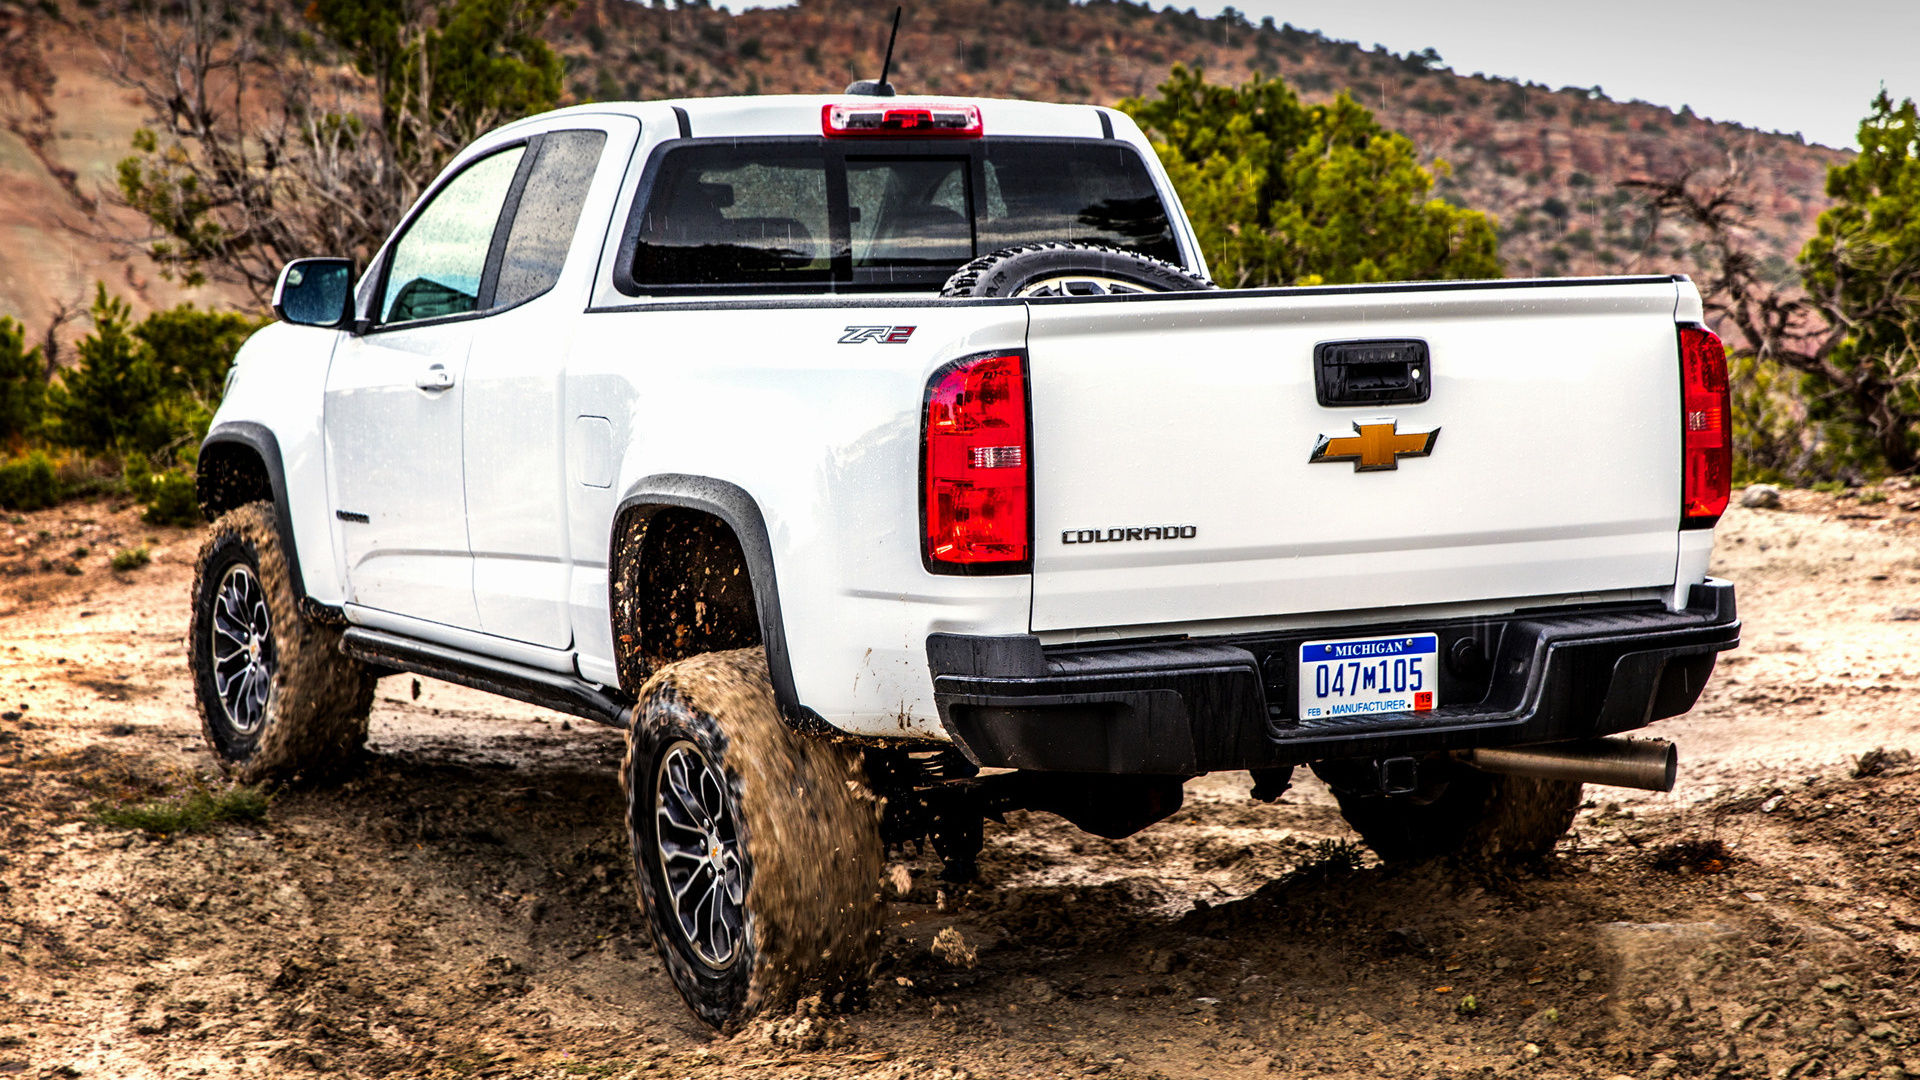 Chevrolet Colorado ZR2 Extended Cab (2017) Wallpapers and HD Images - Car Pixel